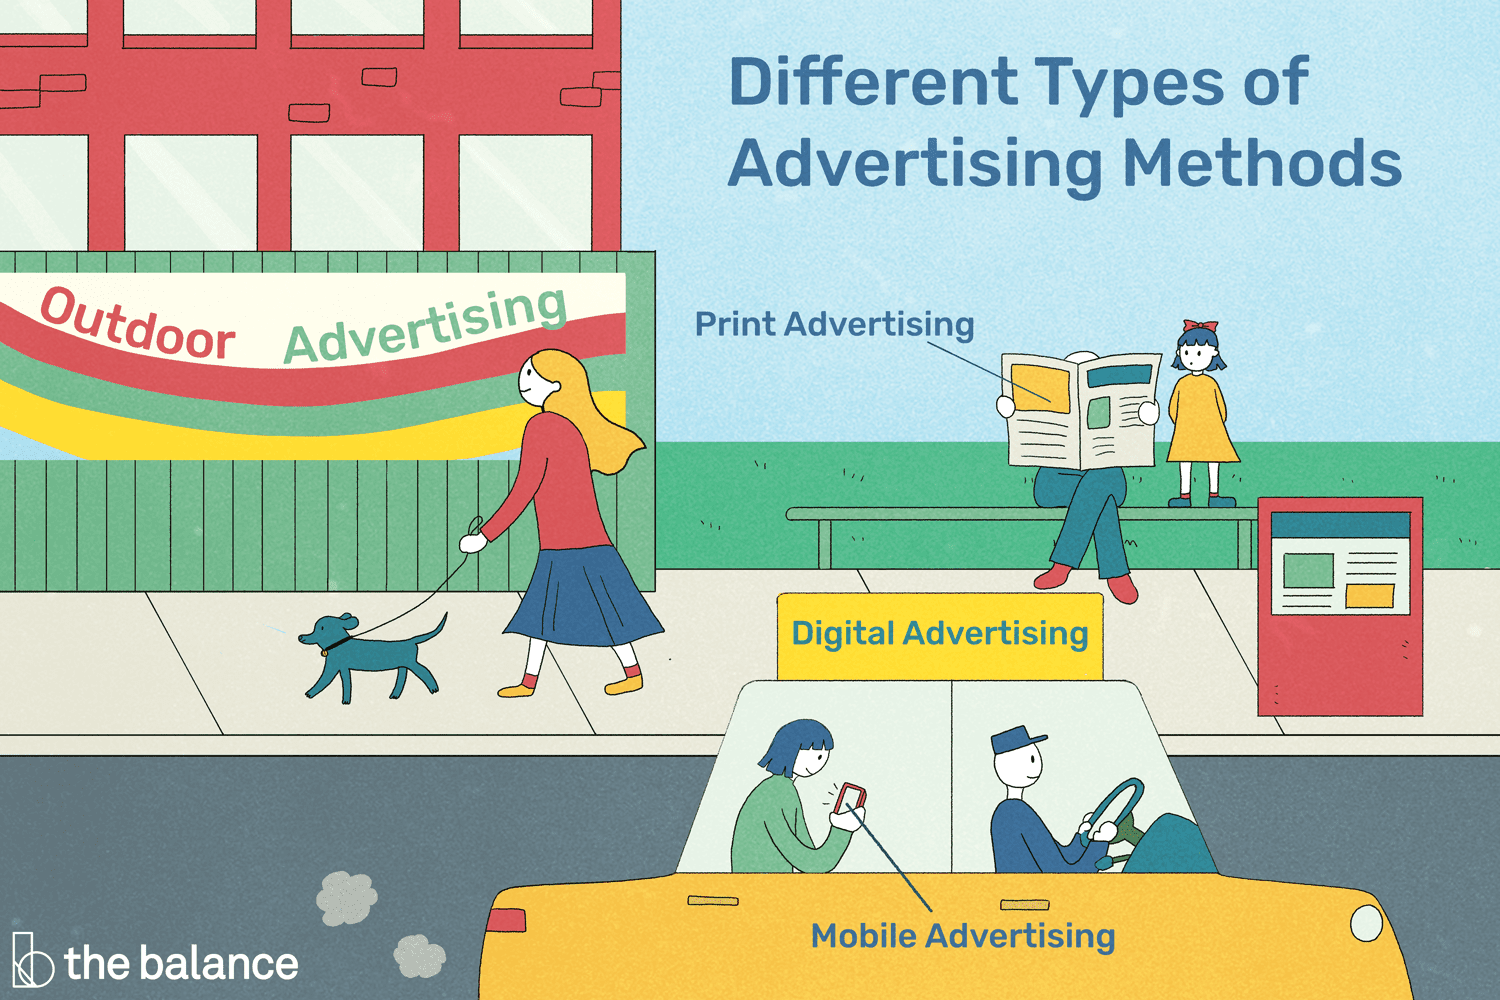 Different Types of Advertising Methods and Media